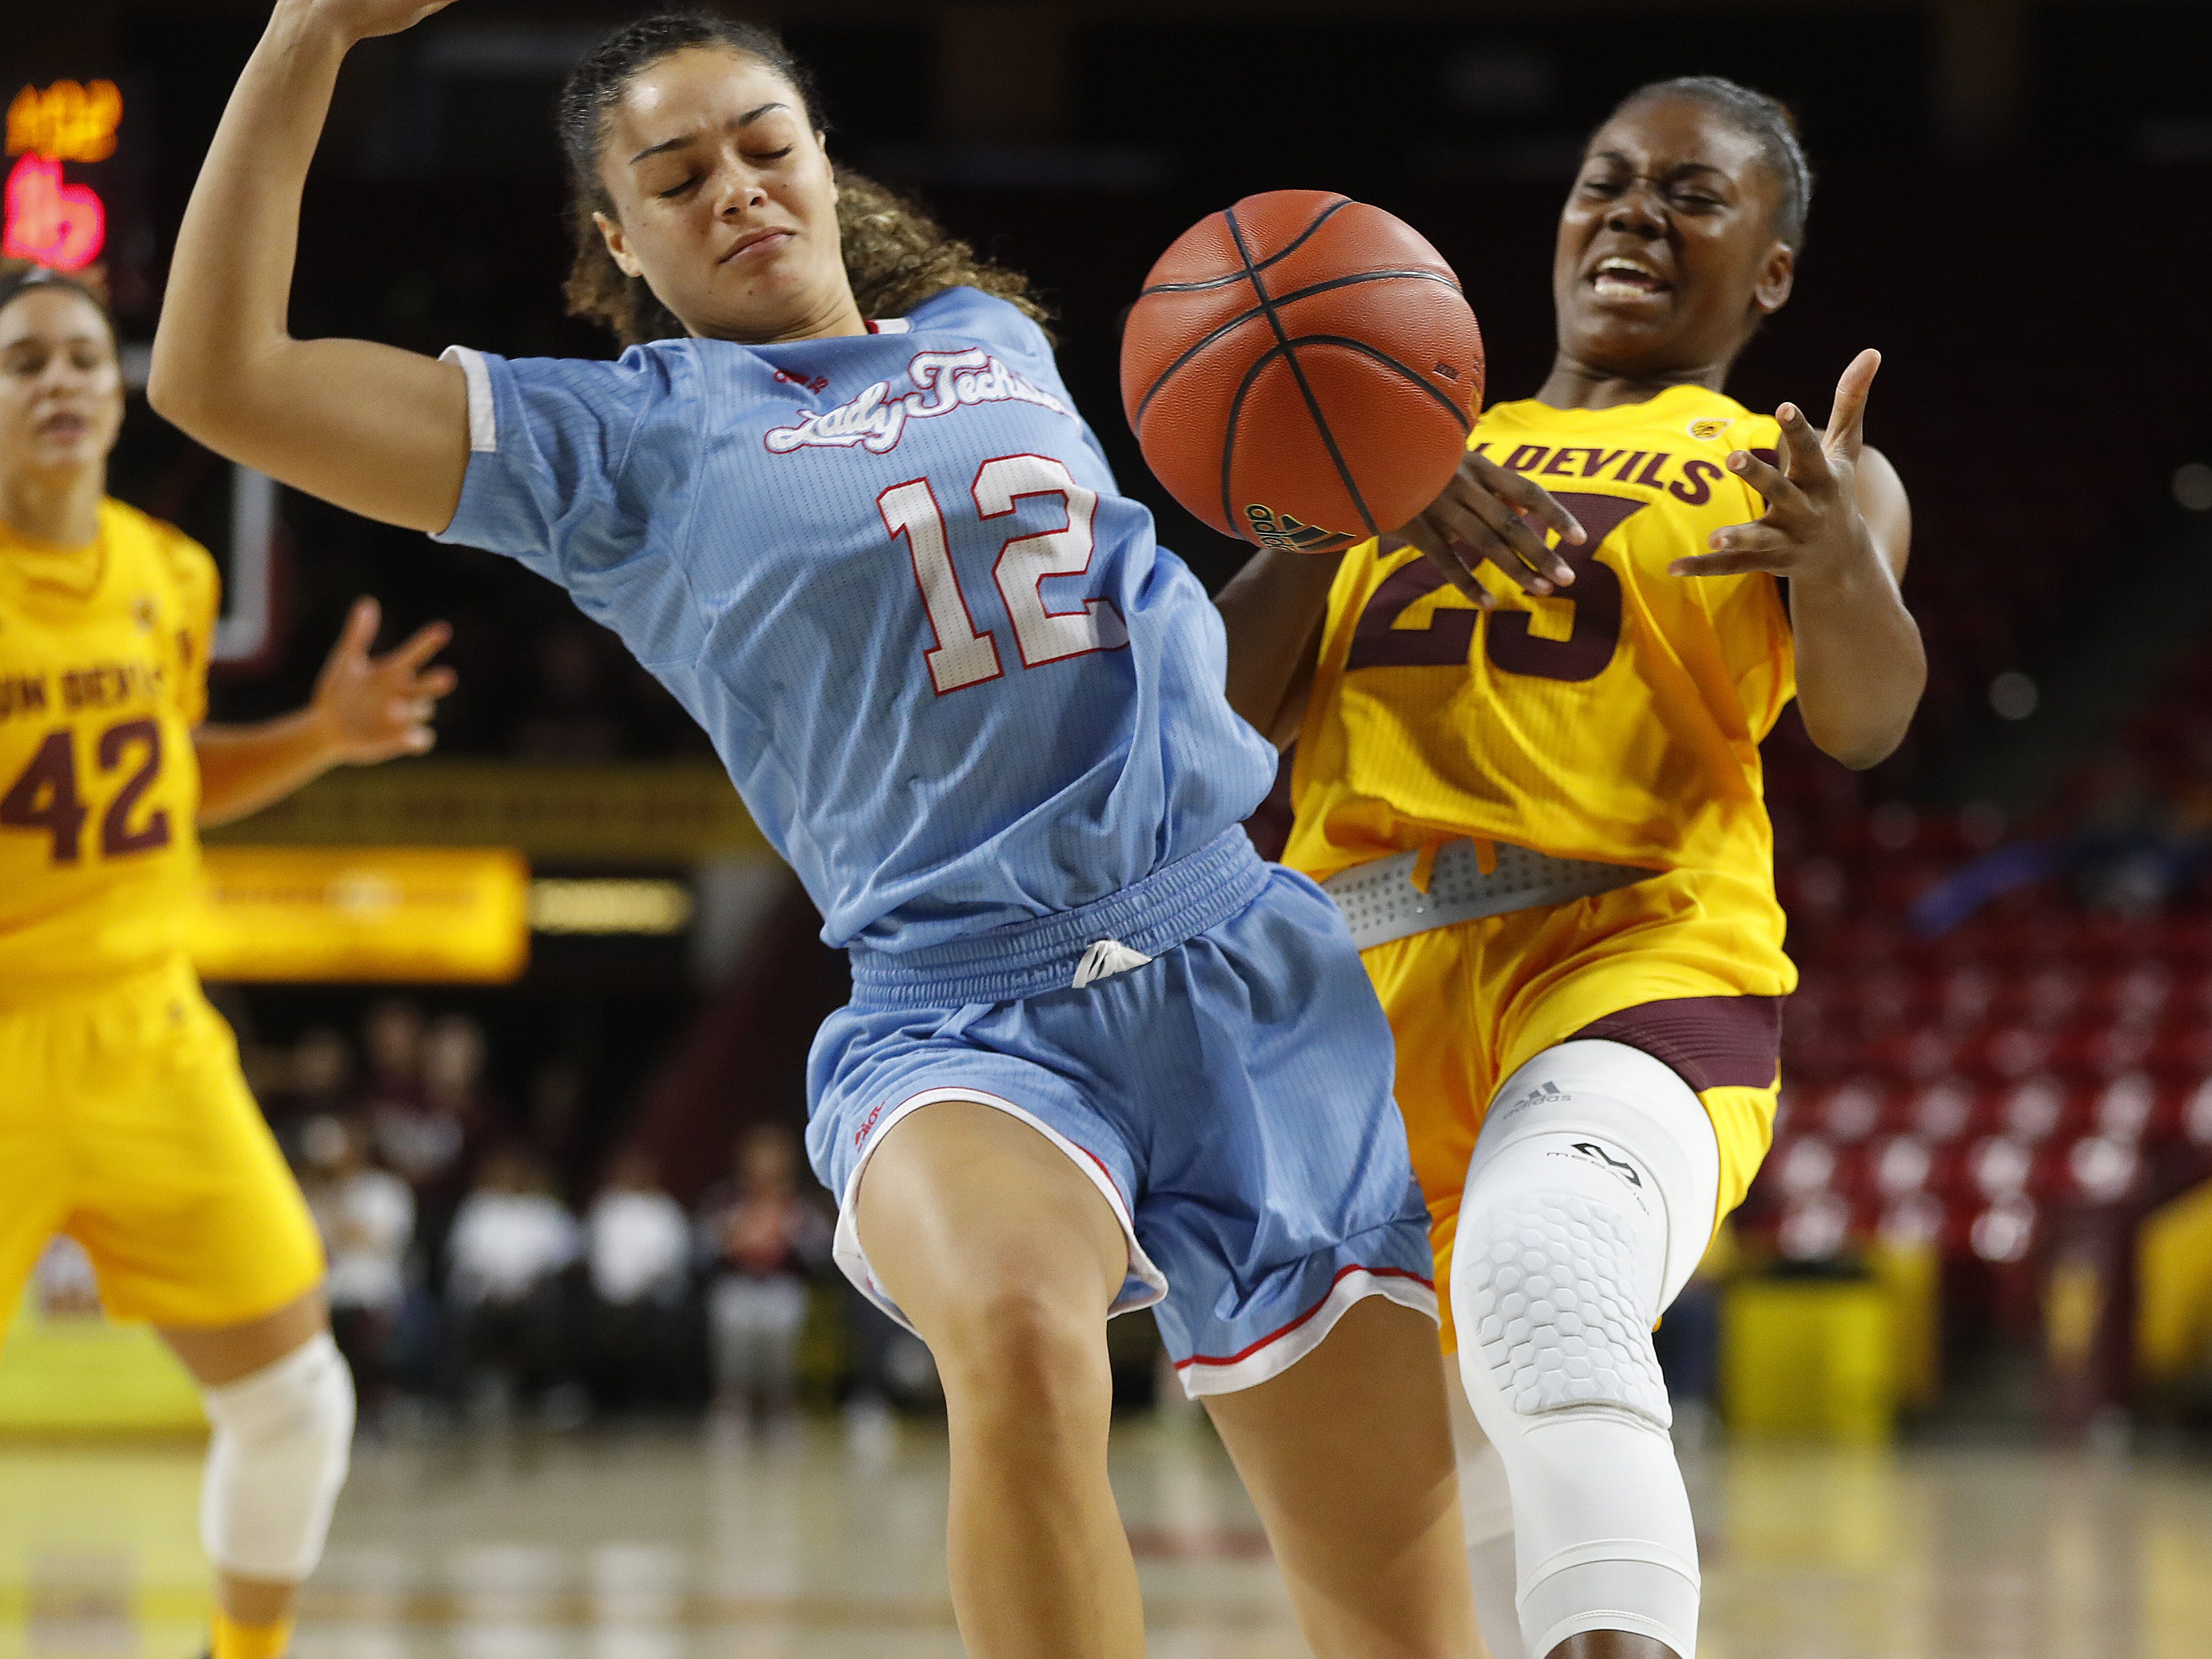 ASU's Iris Mbulito (23) draws a foul on Louisiana Tech's Daria McCutcheon (12) during the second half at Wells Fargo Arena in Tempe, Ariz. on November 30, 2018.